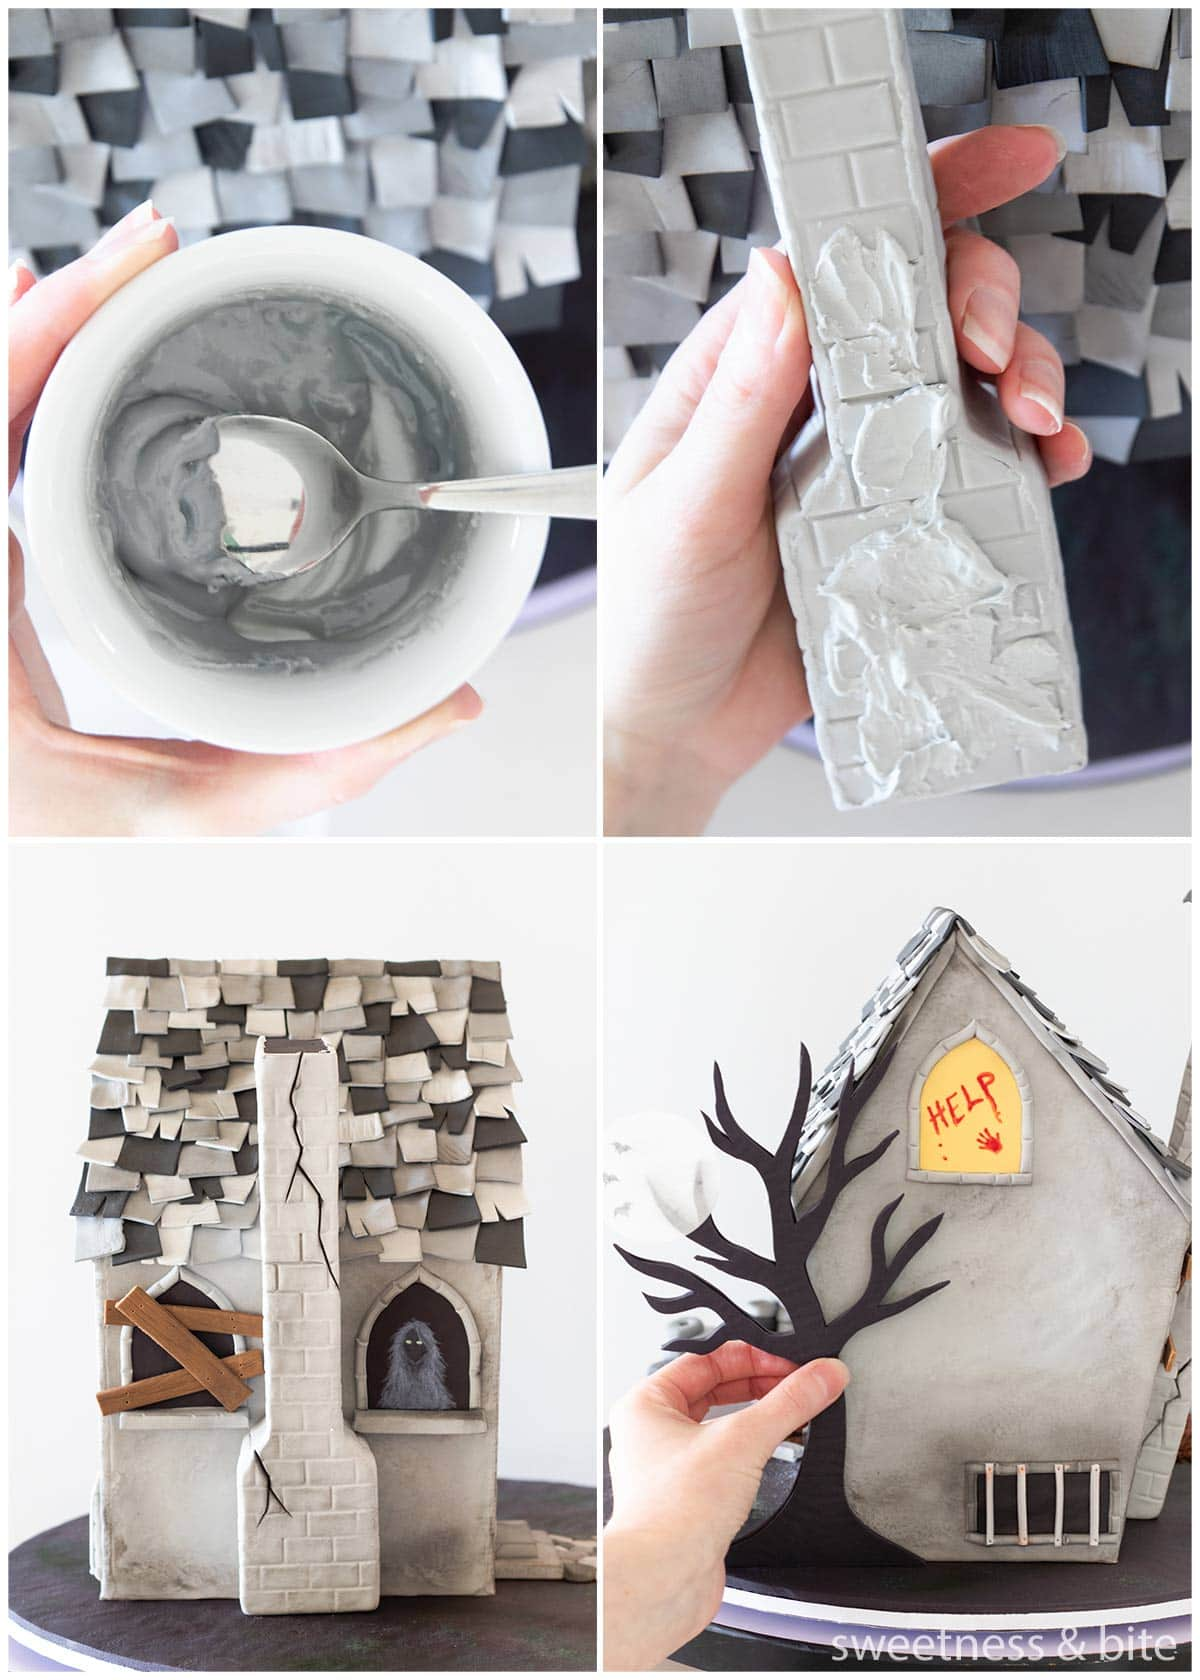 A collage of images of a haunted house cake, showing how to use melted fondant to attach the chimney and a 2D tree silhouette to sides of the cake.